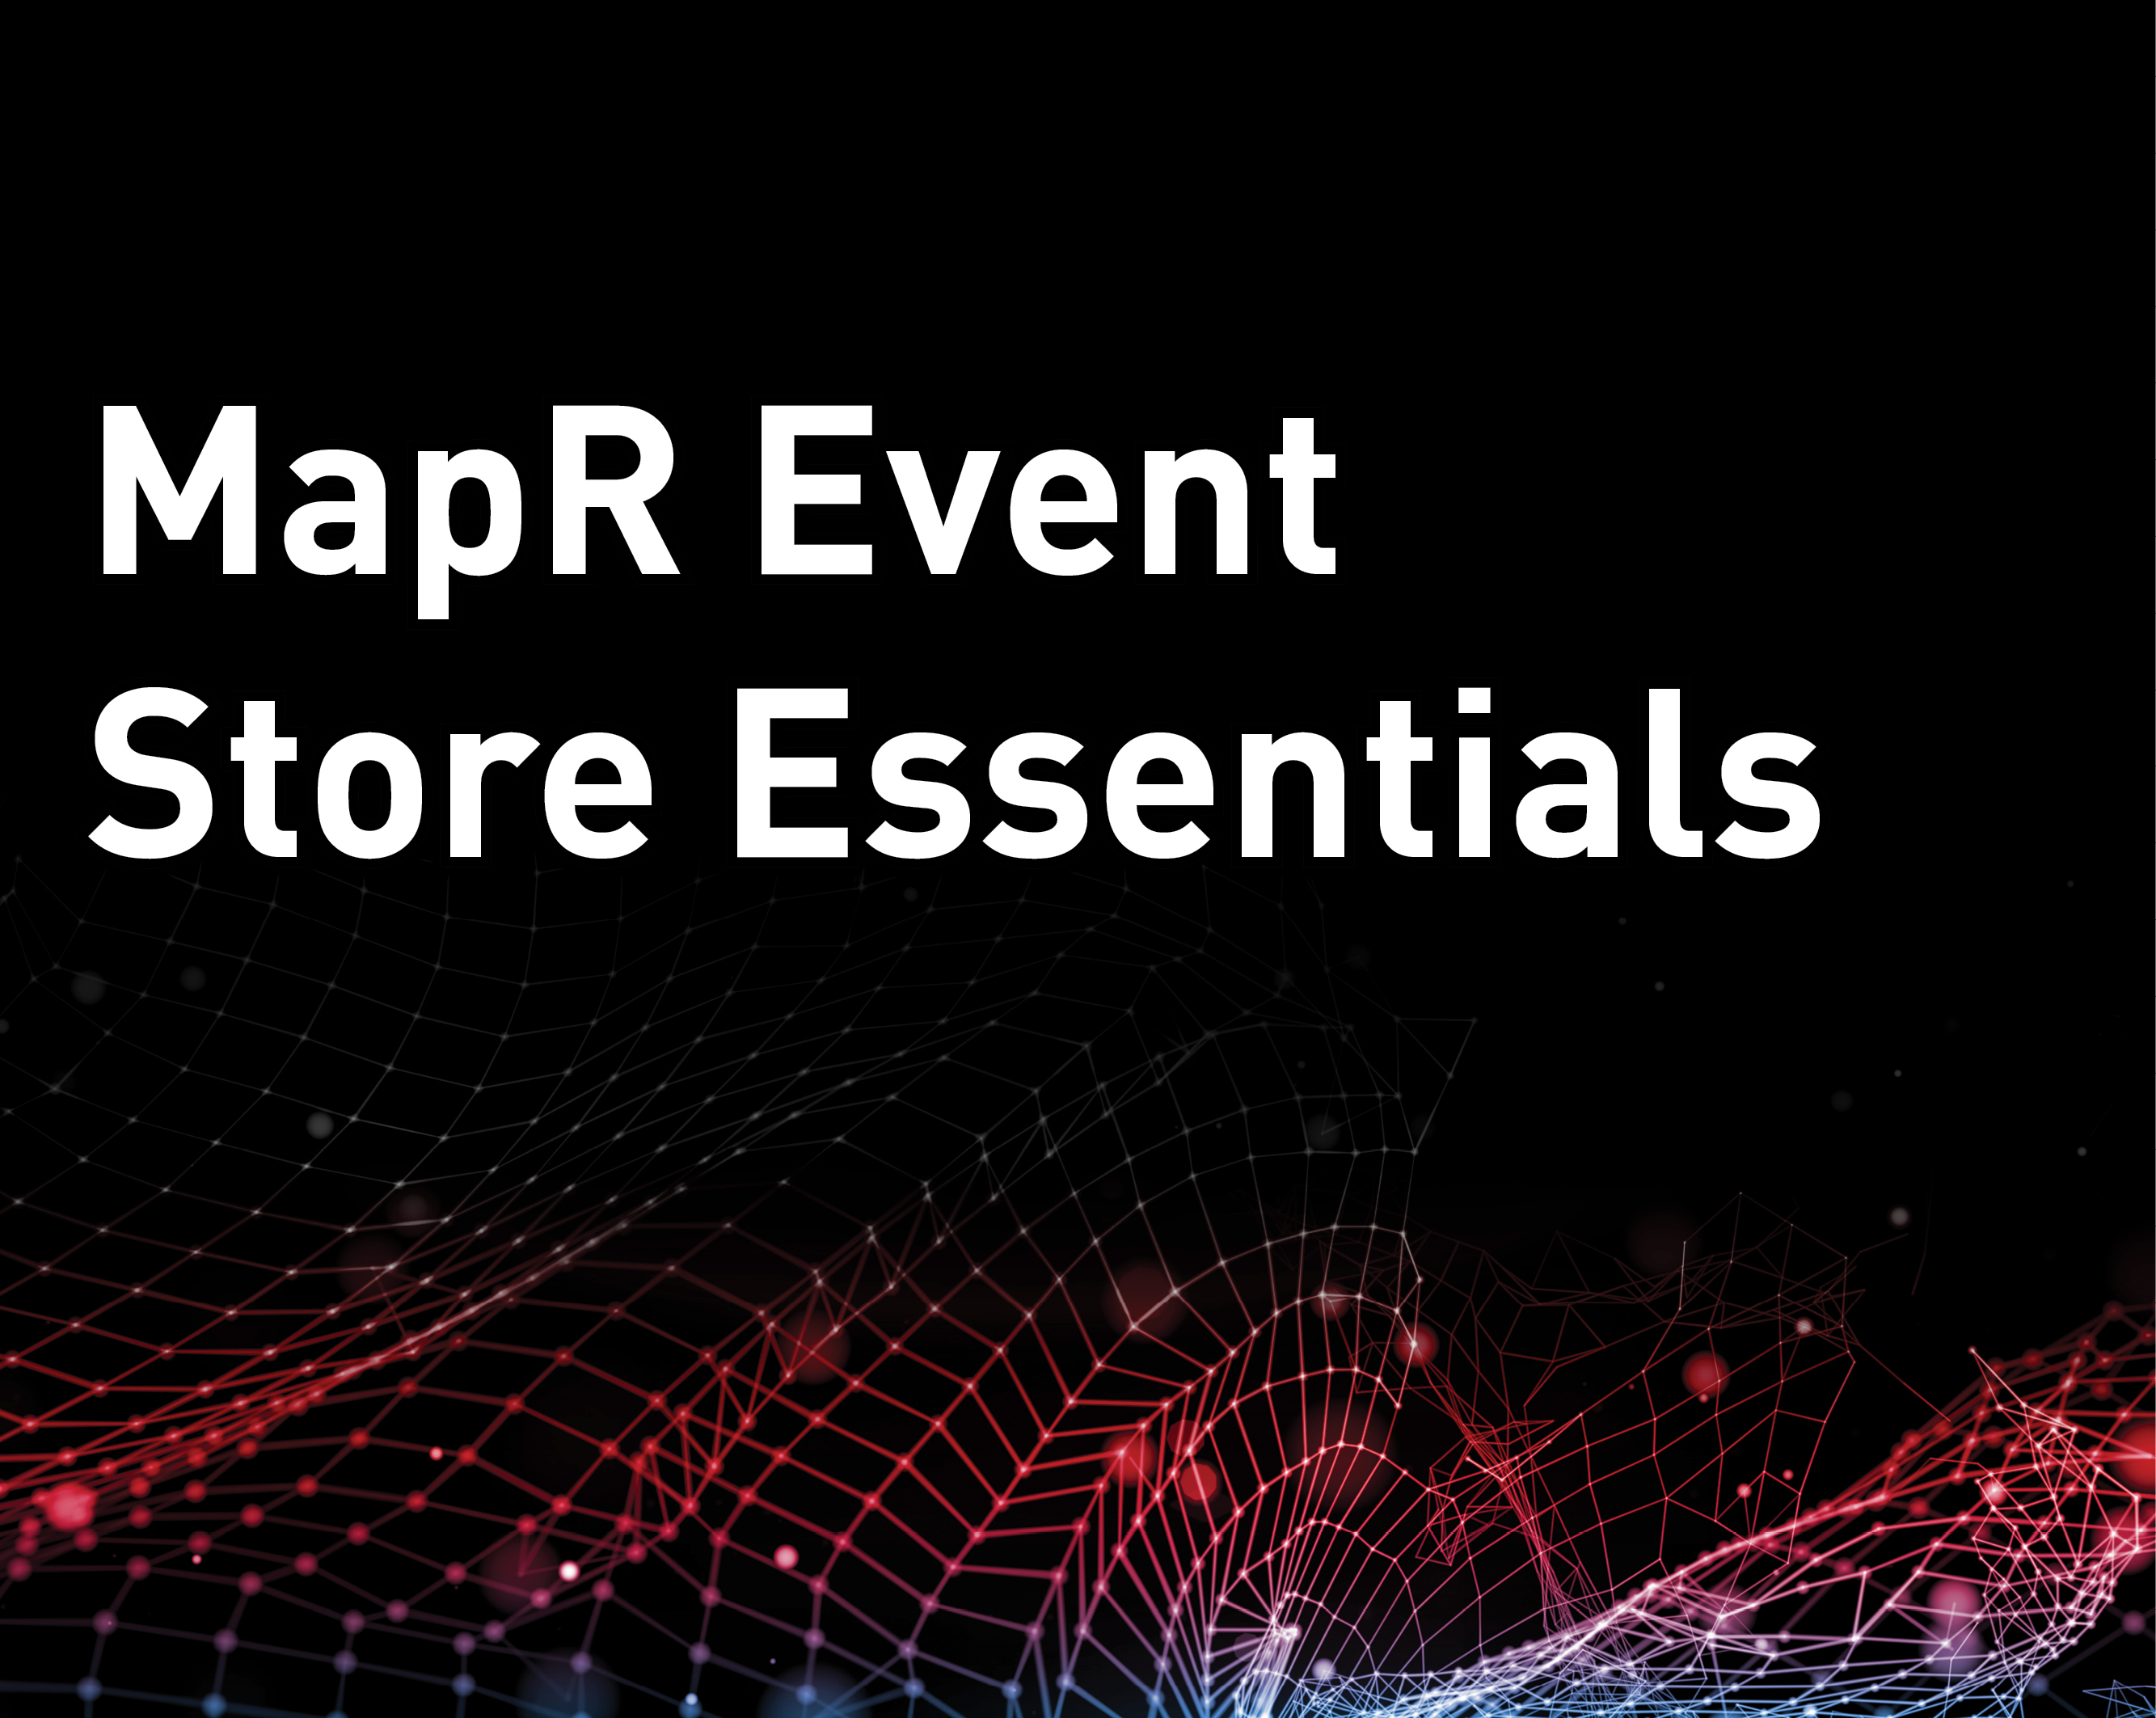 MapR Event Store Essentials